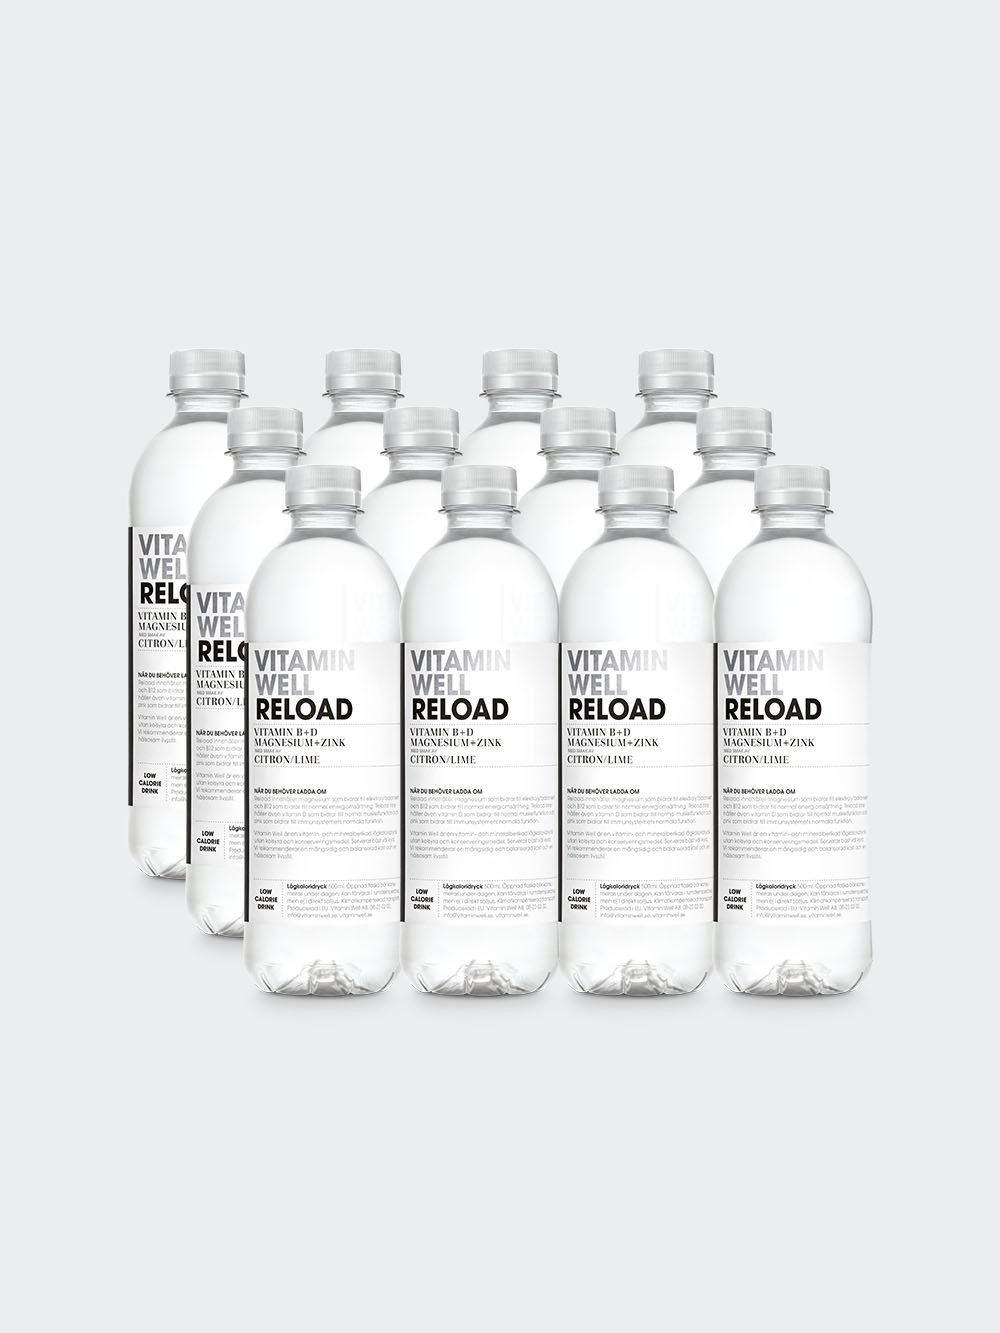 Vitamin Well Reload 12-pack